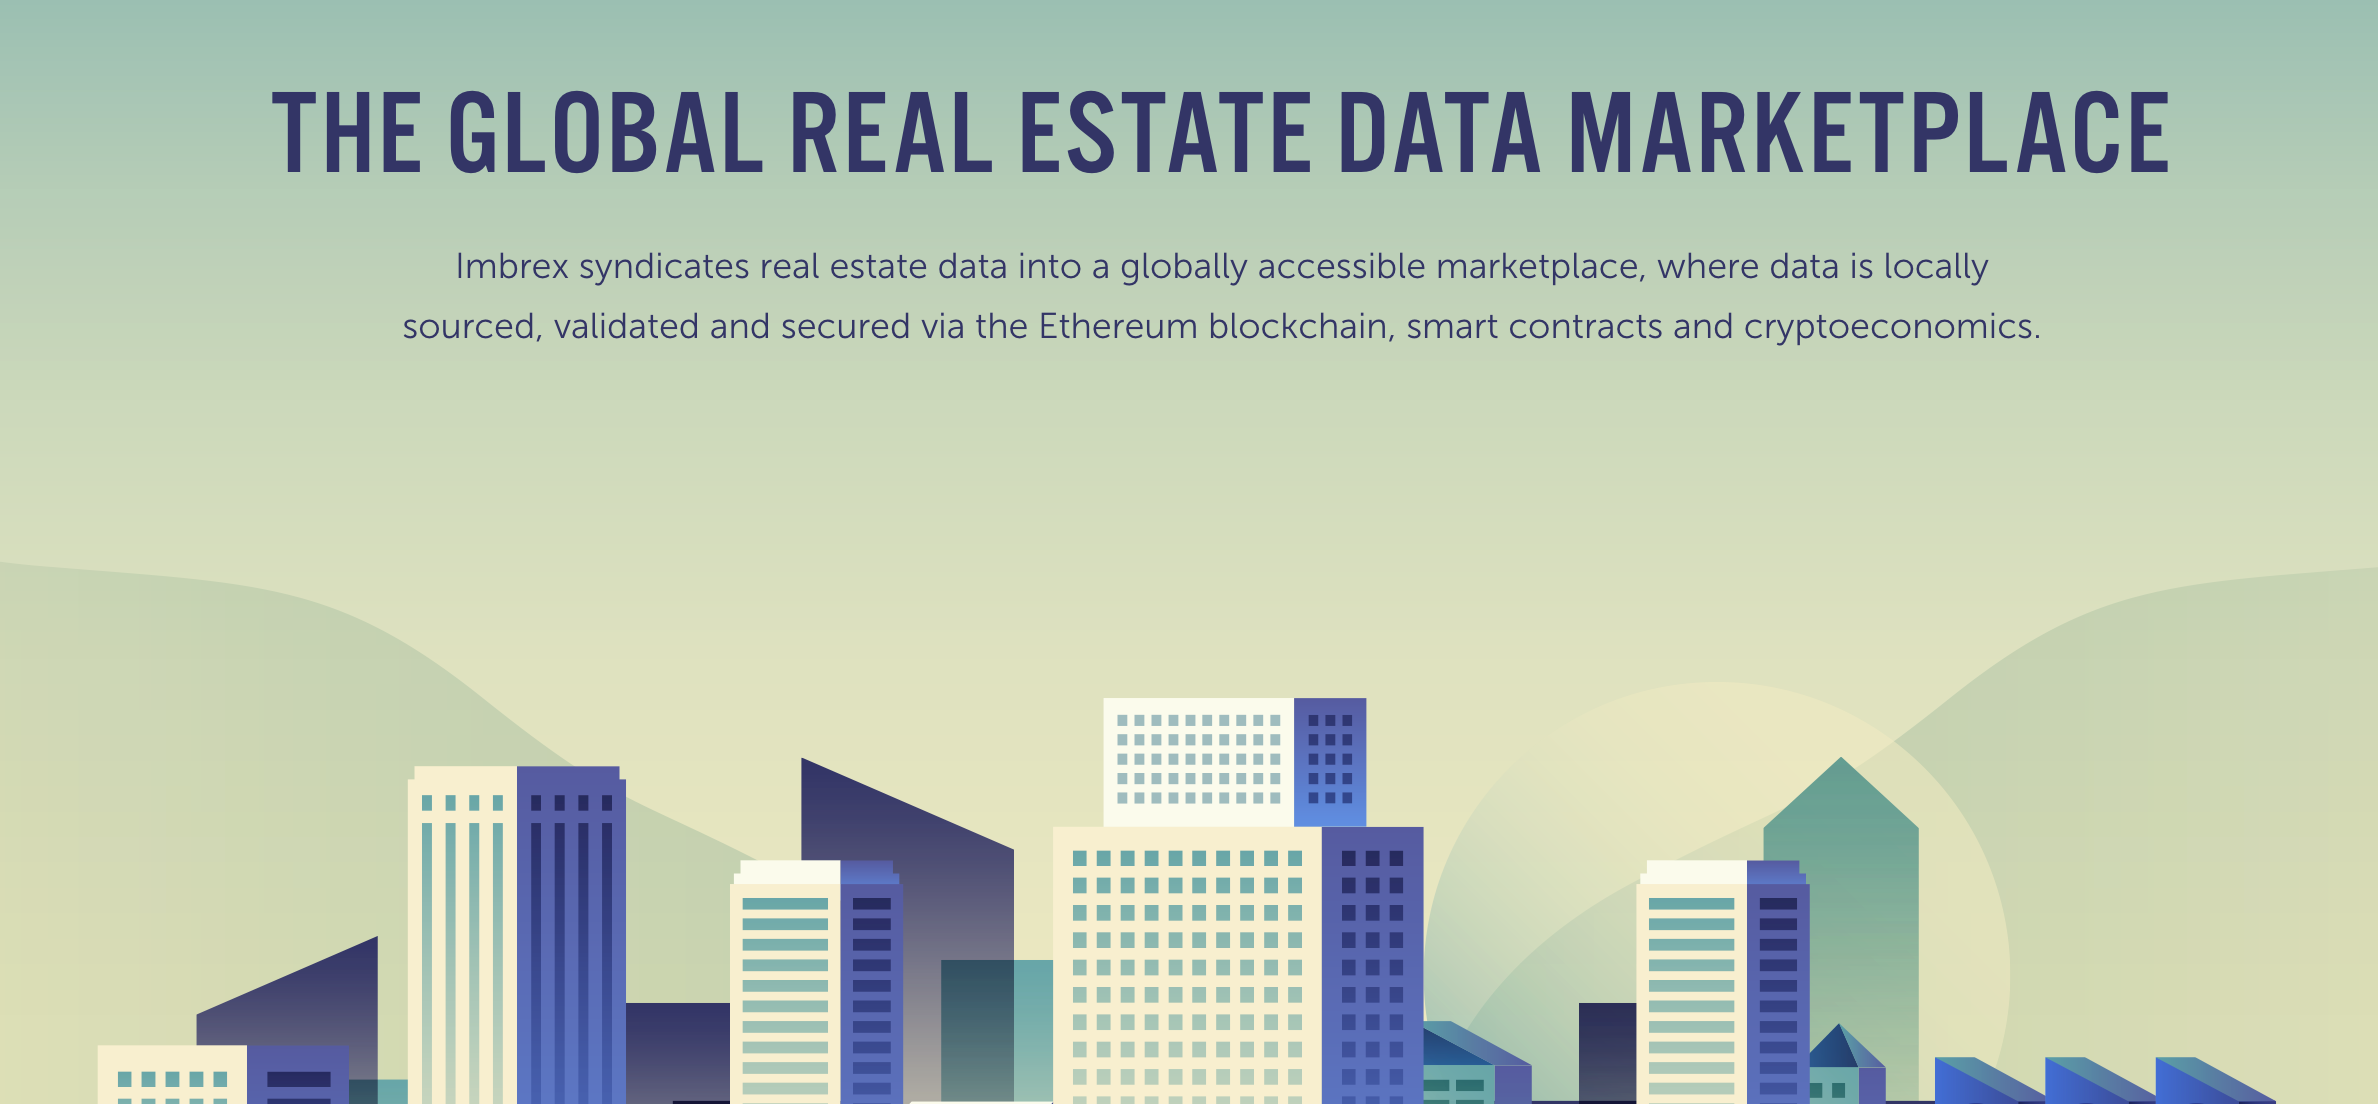 14 Blockchain Startups in Real Estate to Watch - YouTeam